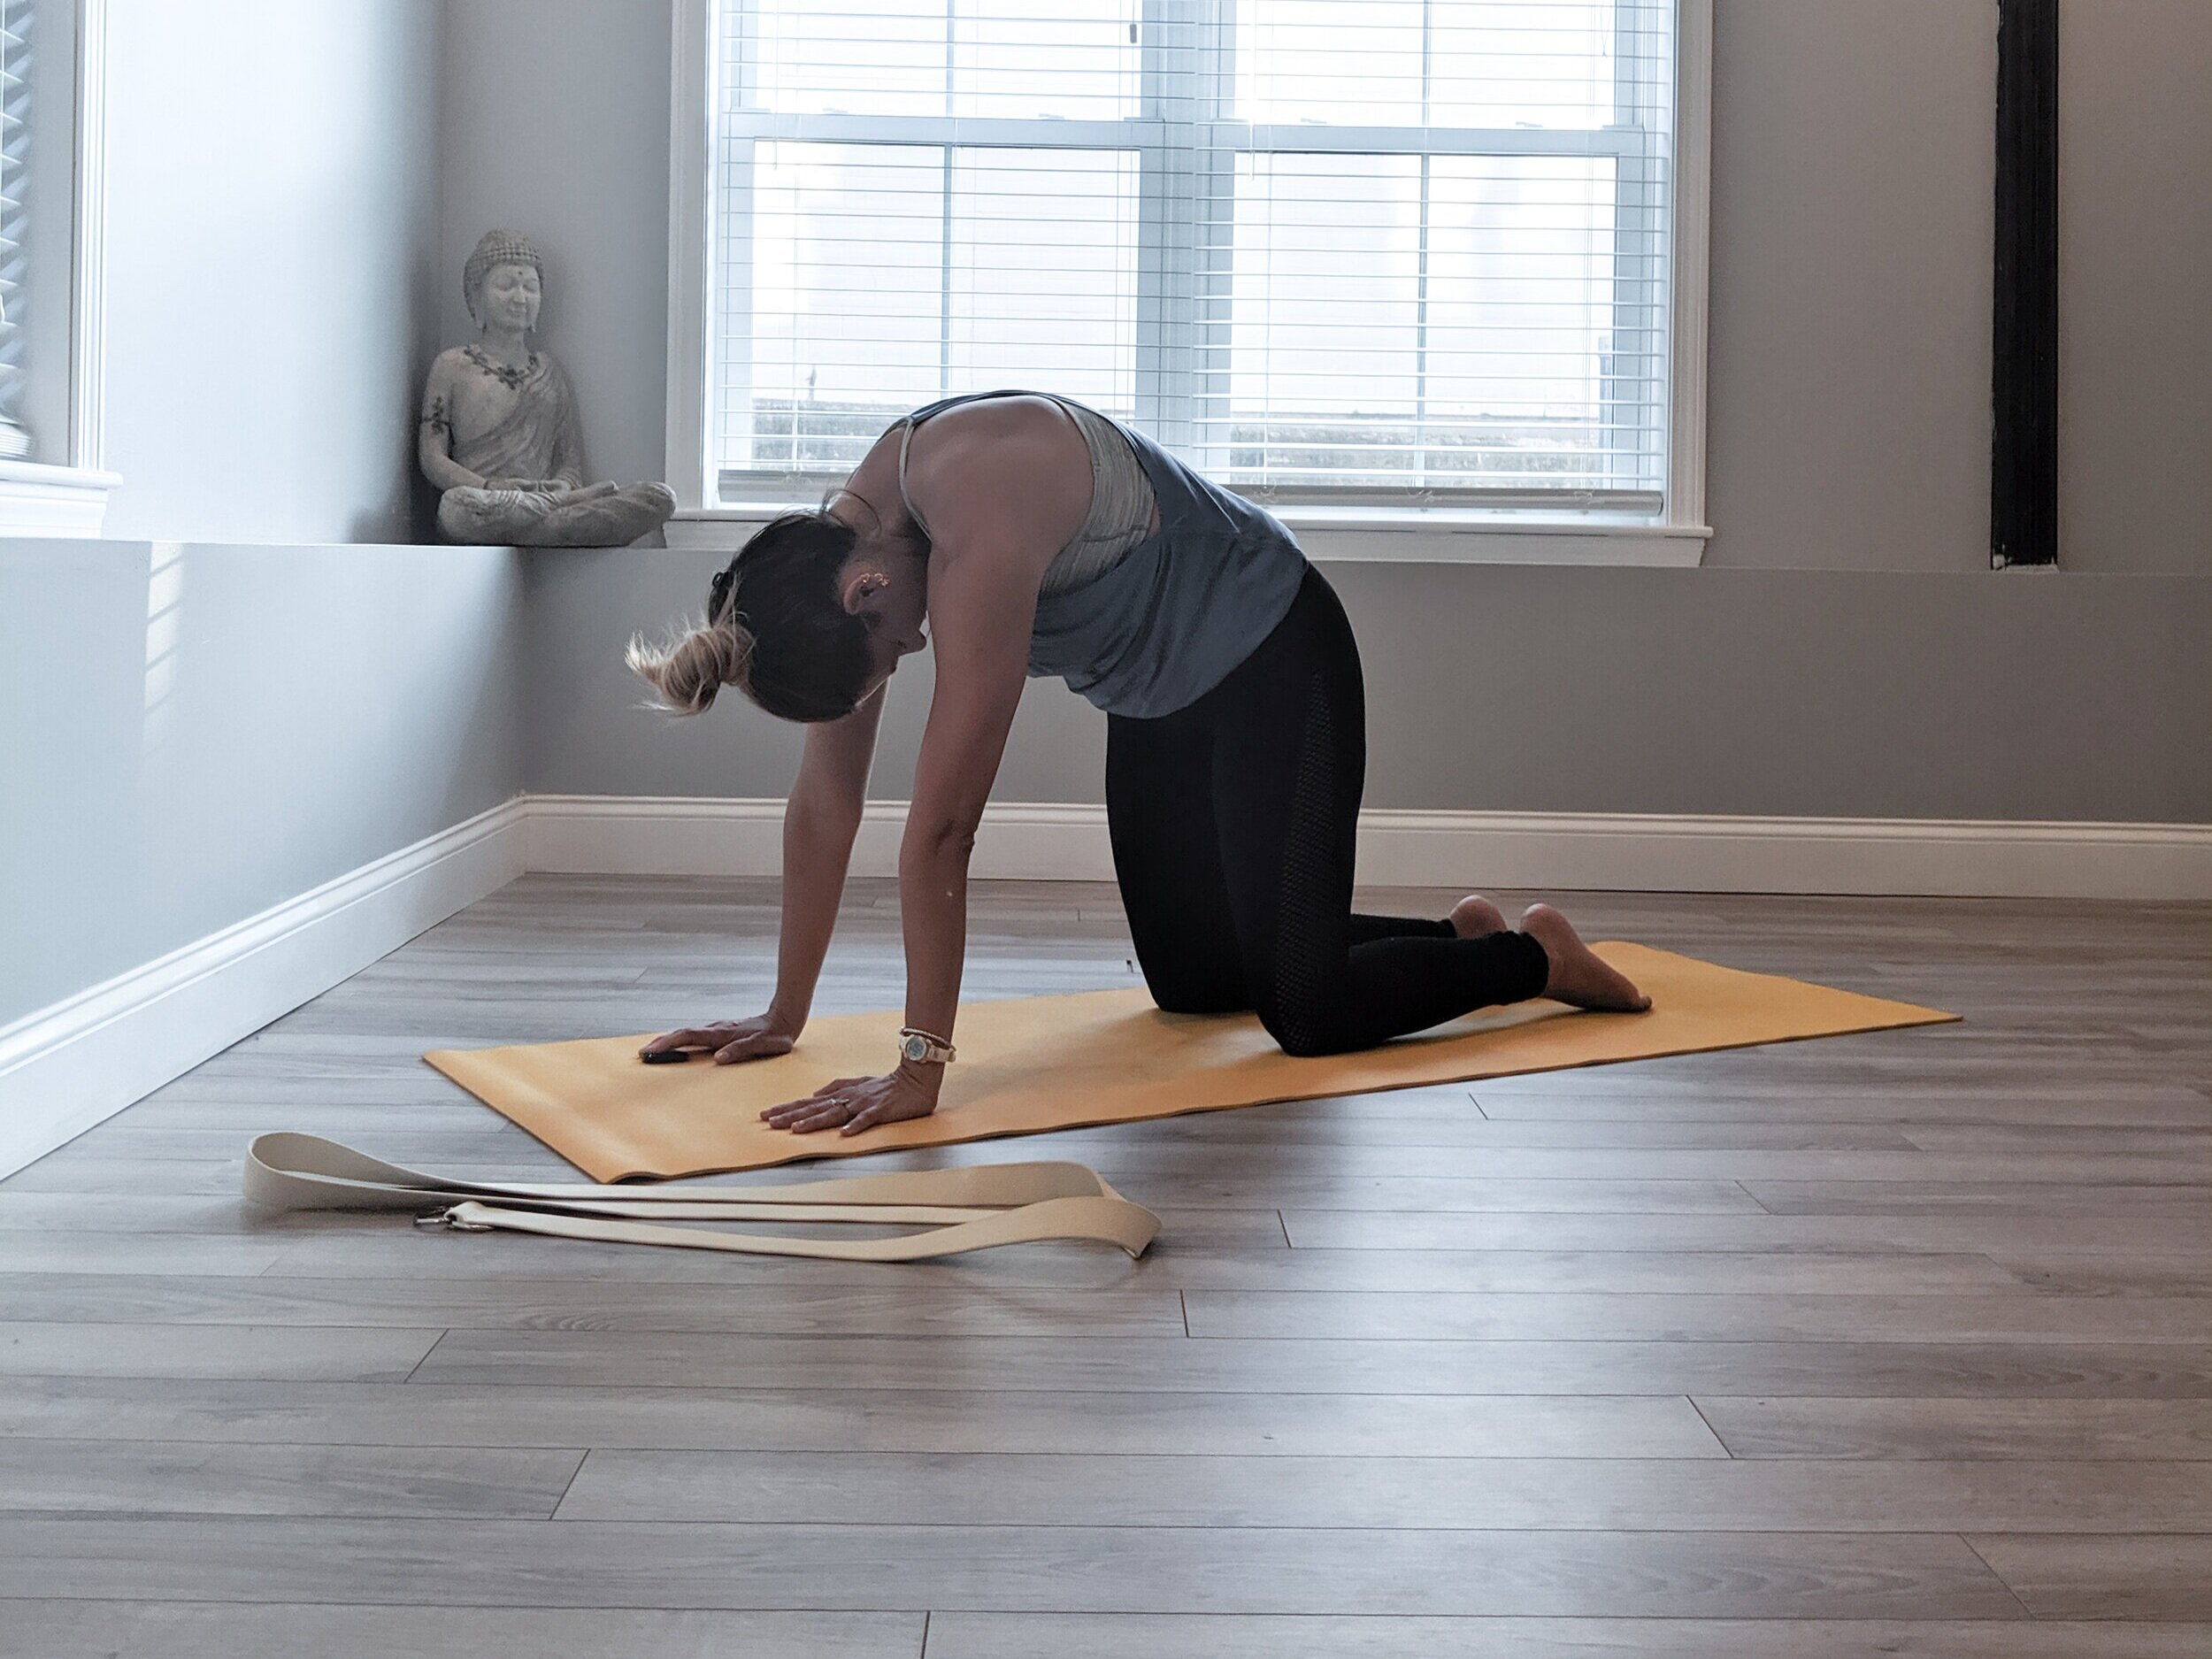 3. Cat pose - From cow pose, begin to round the spine as you exhale coming in to cat pose. Bring your chin to chest and find space in the shoulder blades. Follow the breath and come back into cow, repeat this for a few rounds of breath.